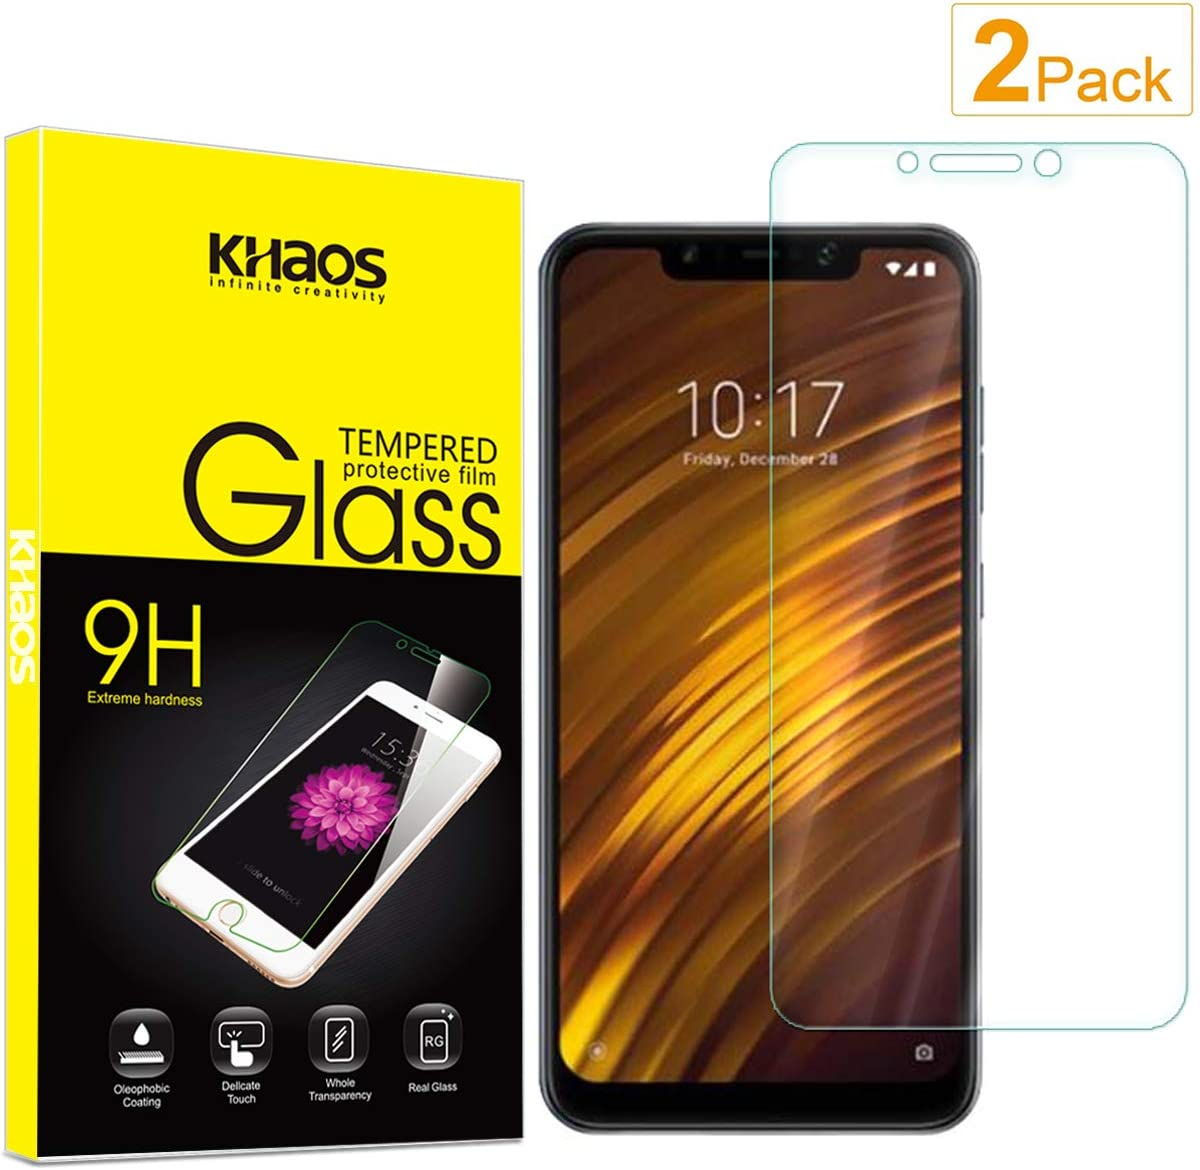 Amazon Com For Xiaomi Pocophone F1 Screen Protector 2 Pack Khaos Tempered Glass Screen Protector For Poco F1 9h Hd Clear Ant Scratch Glass Protector